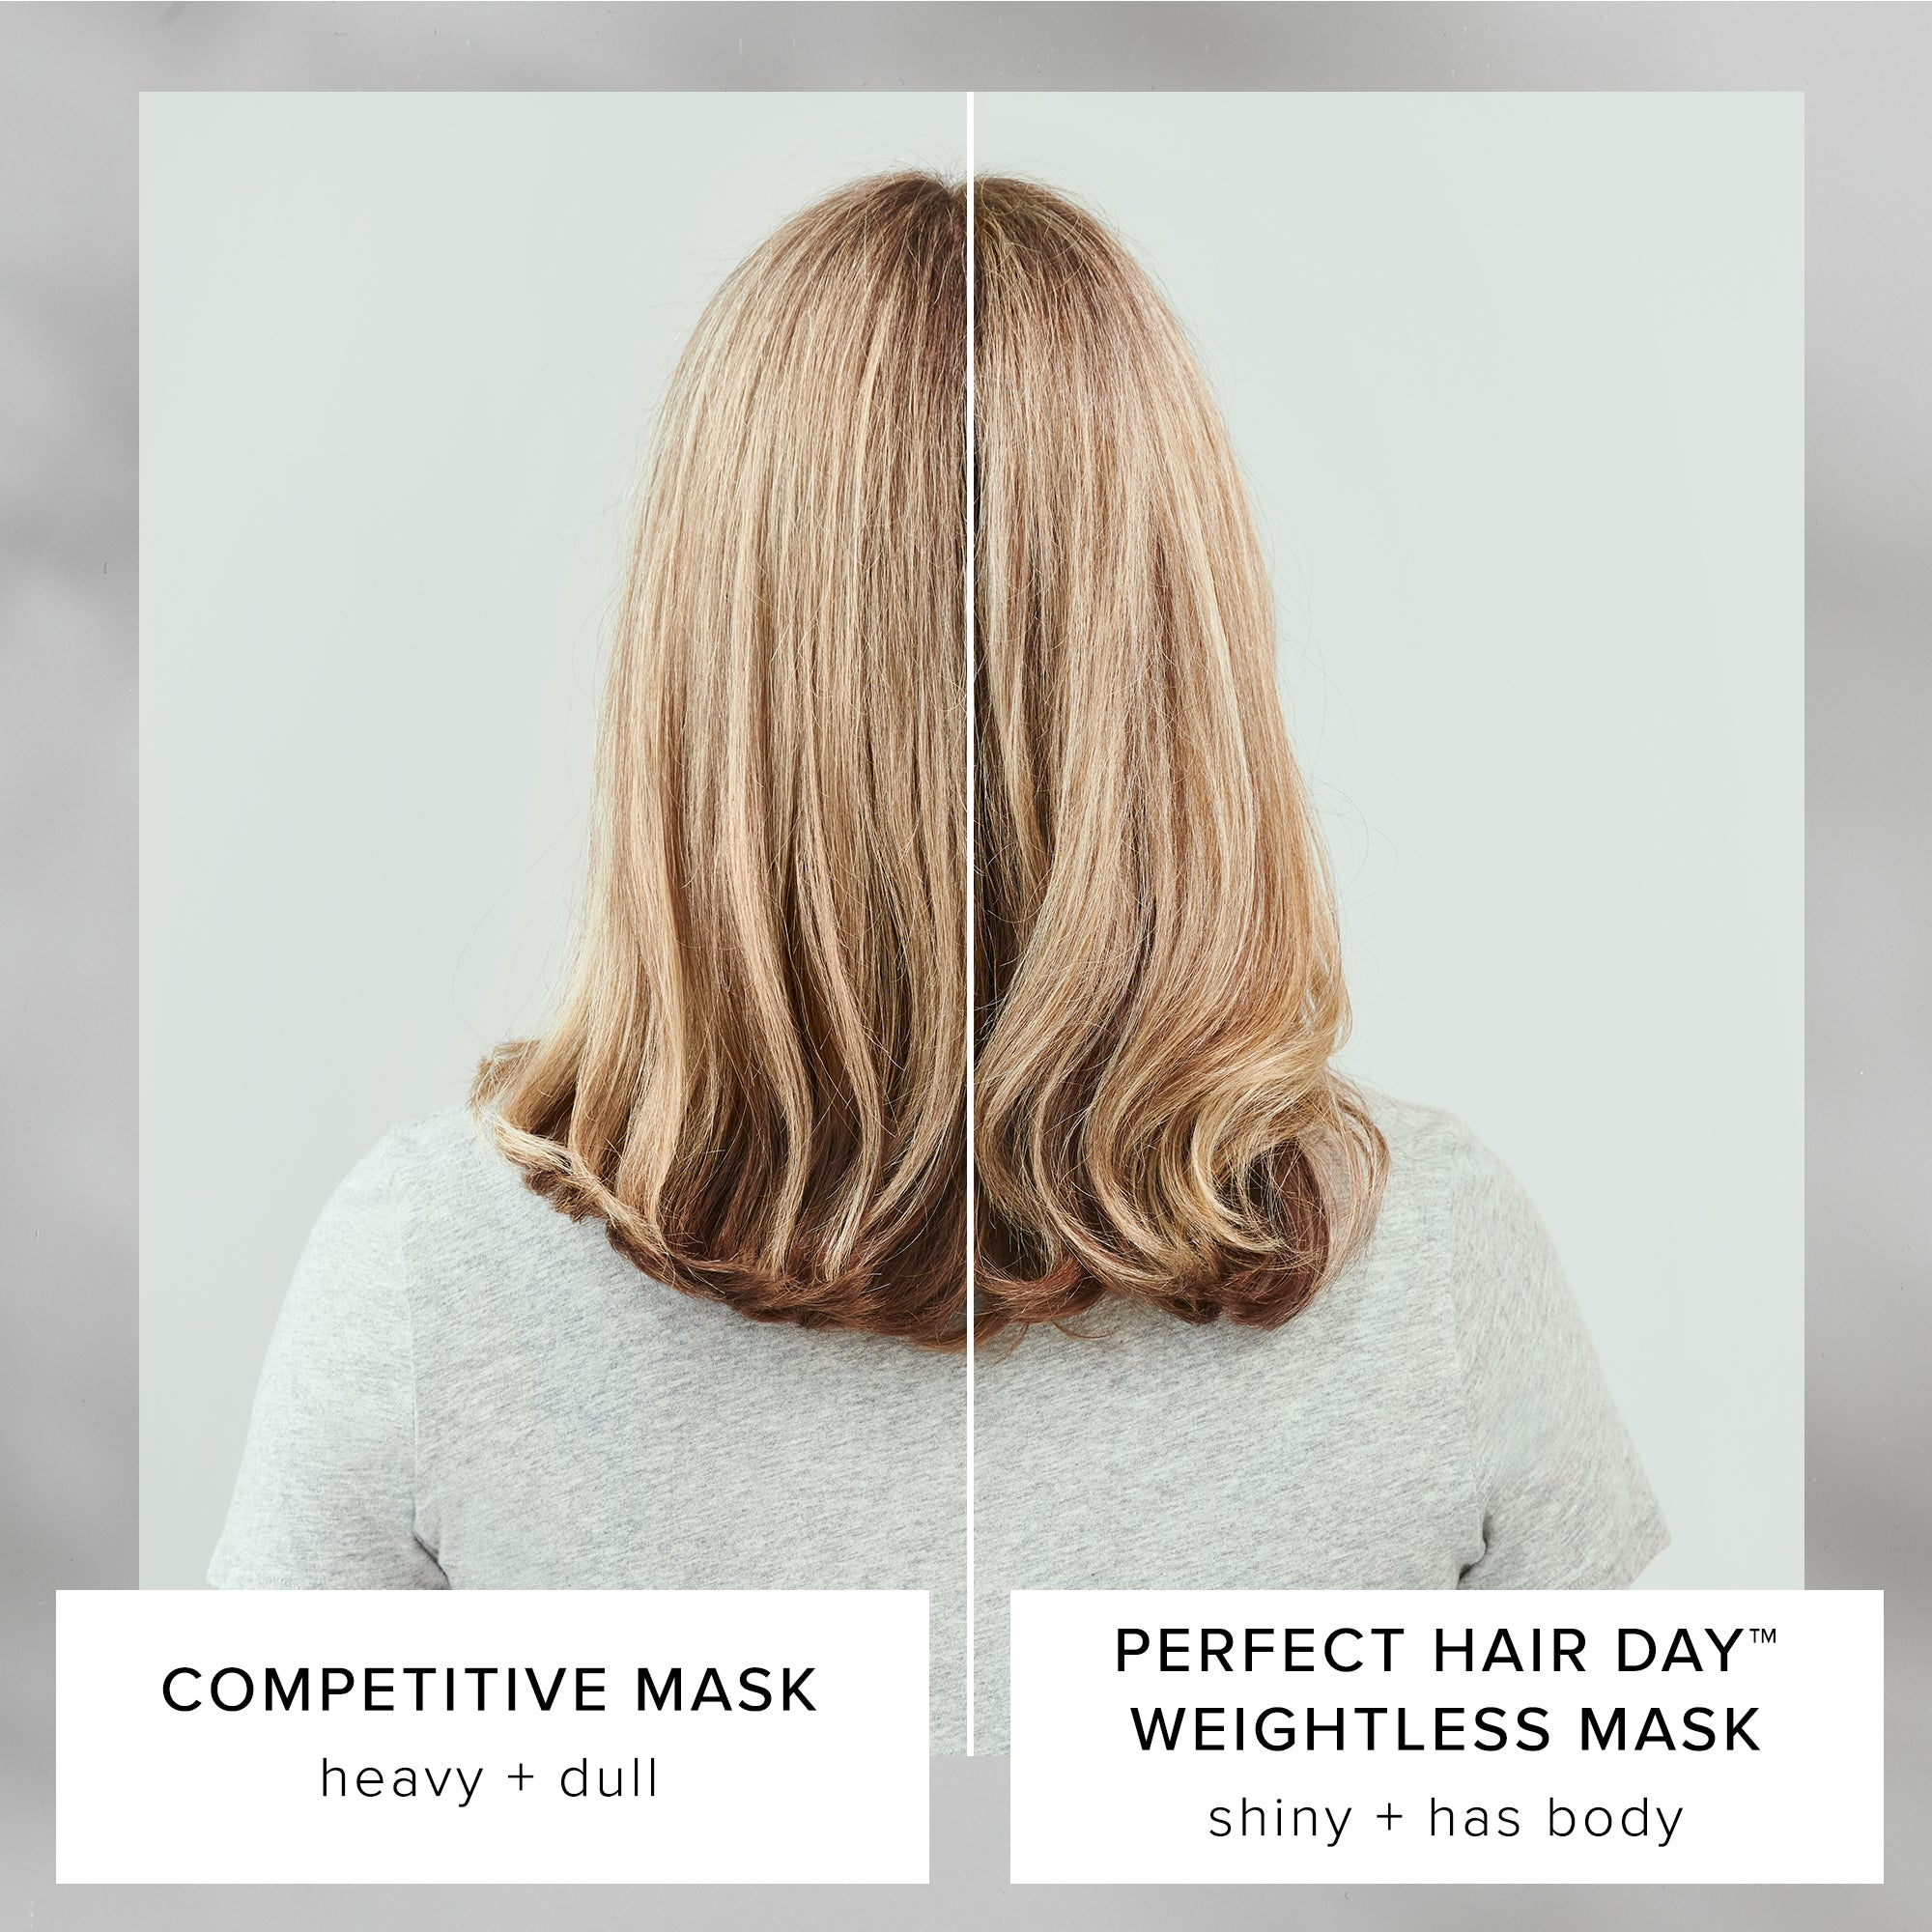 Perfect hair Day™ Weightless Mask